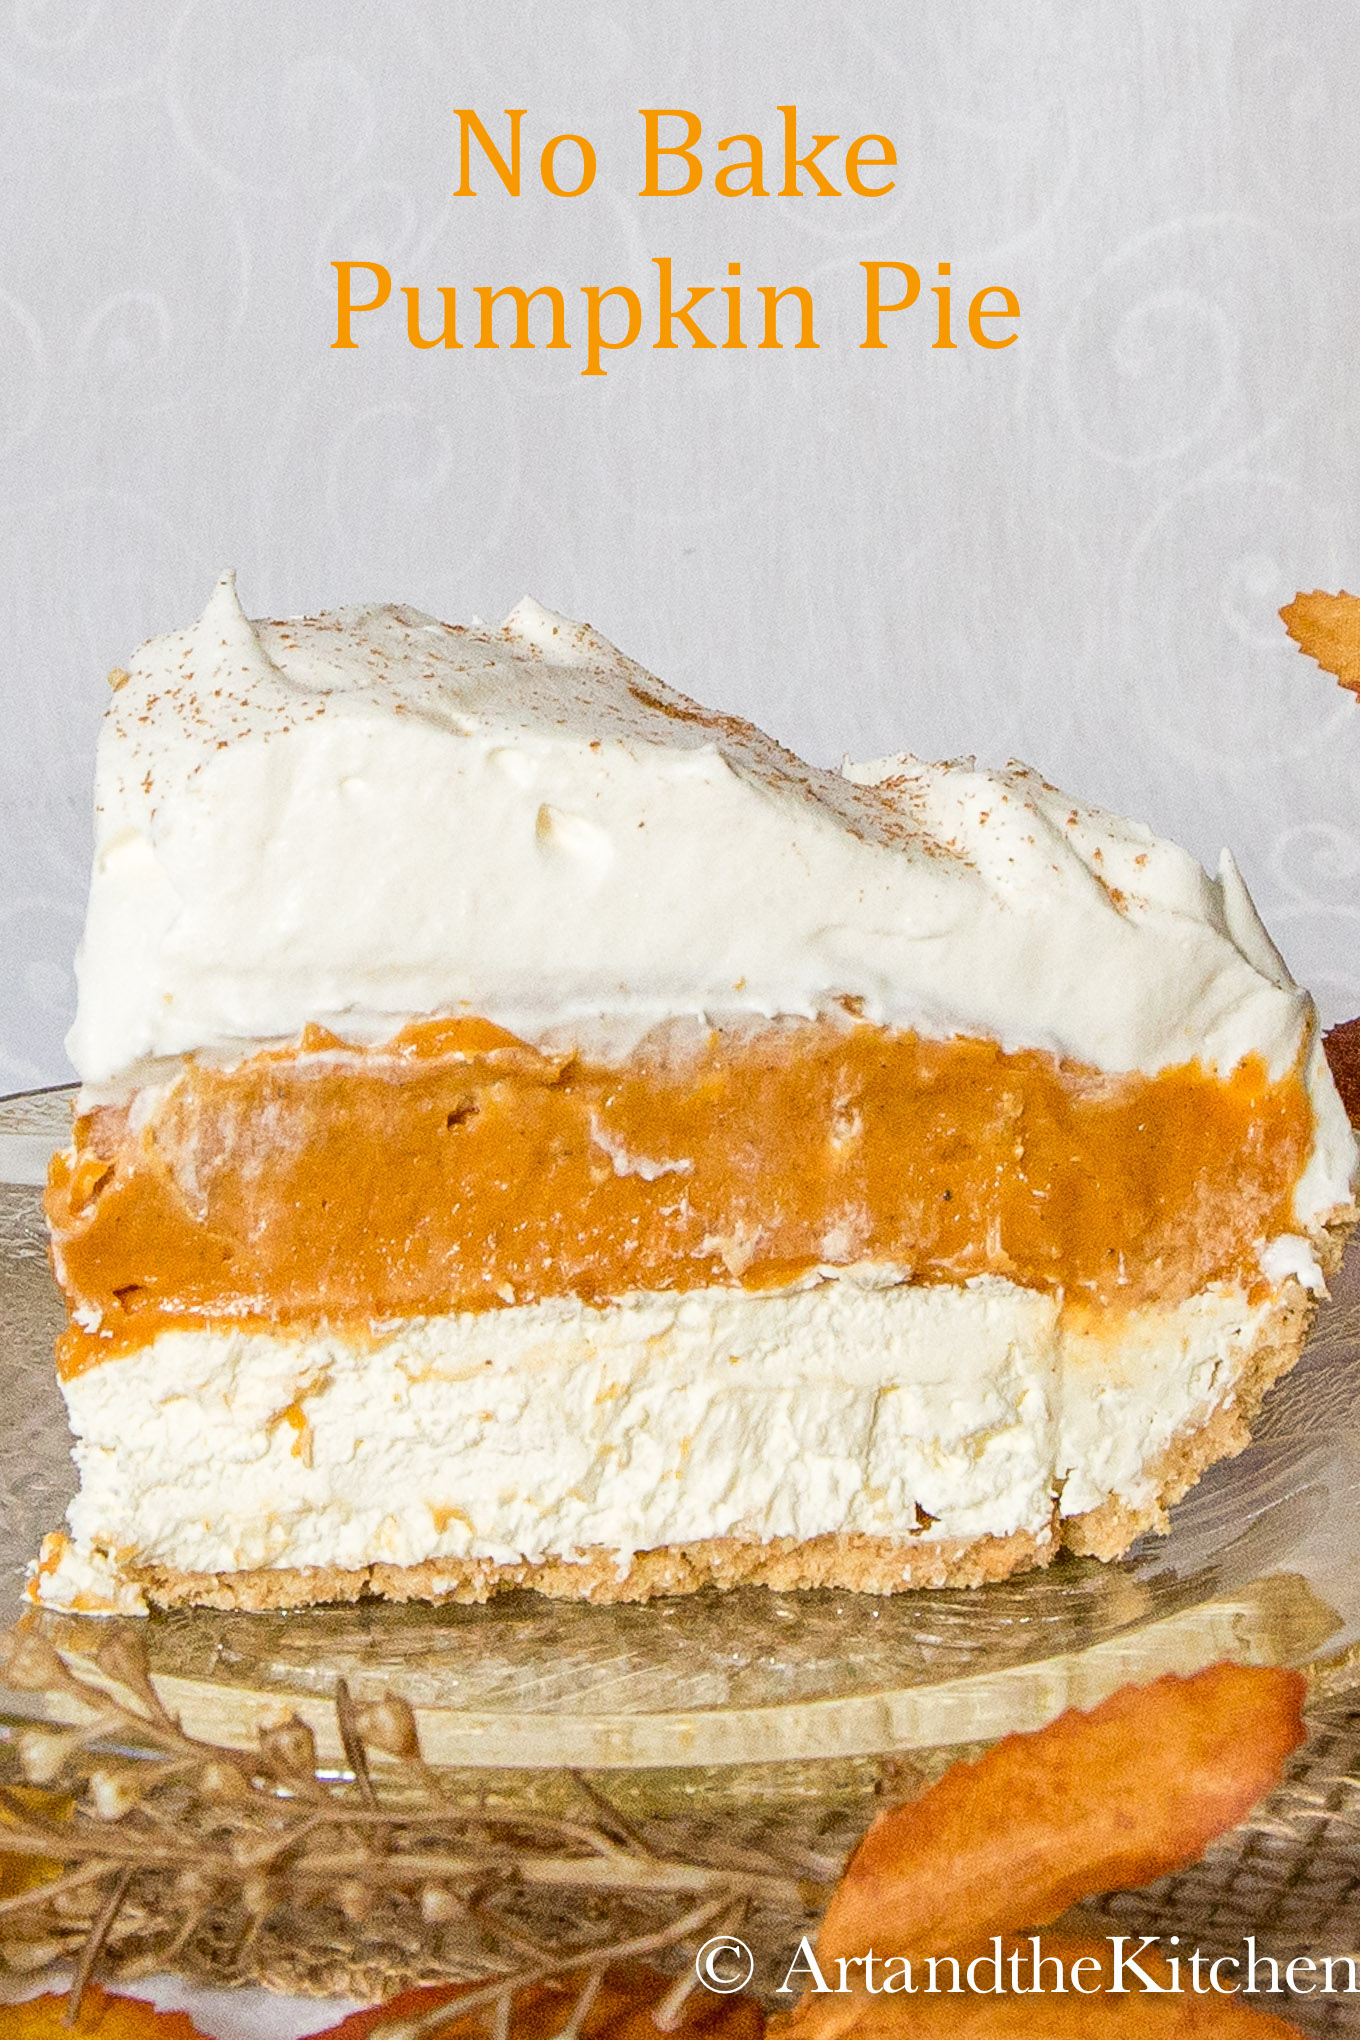 Slice of pumpkin pie with layers of pumpkin, cream cheese and whipped cream on amber coloured glass plate.